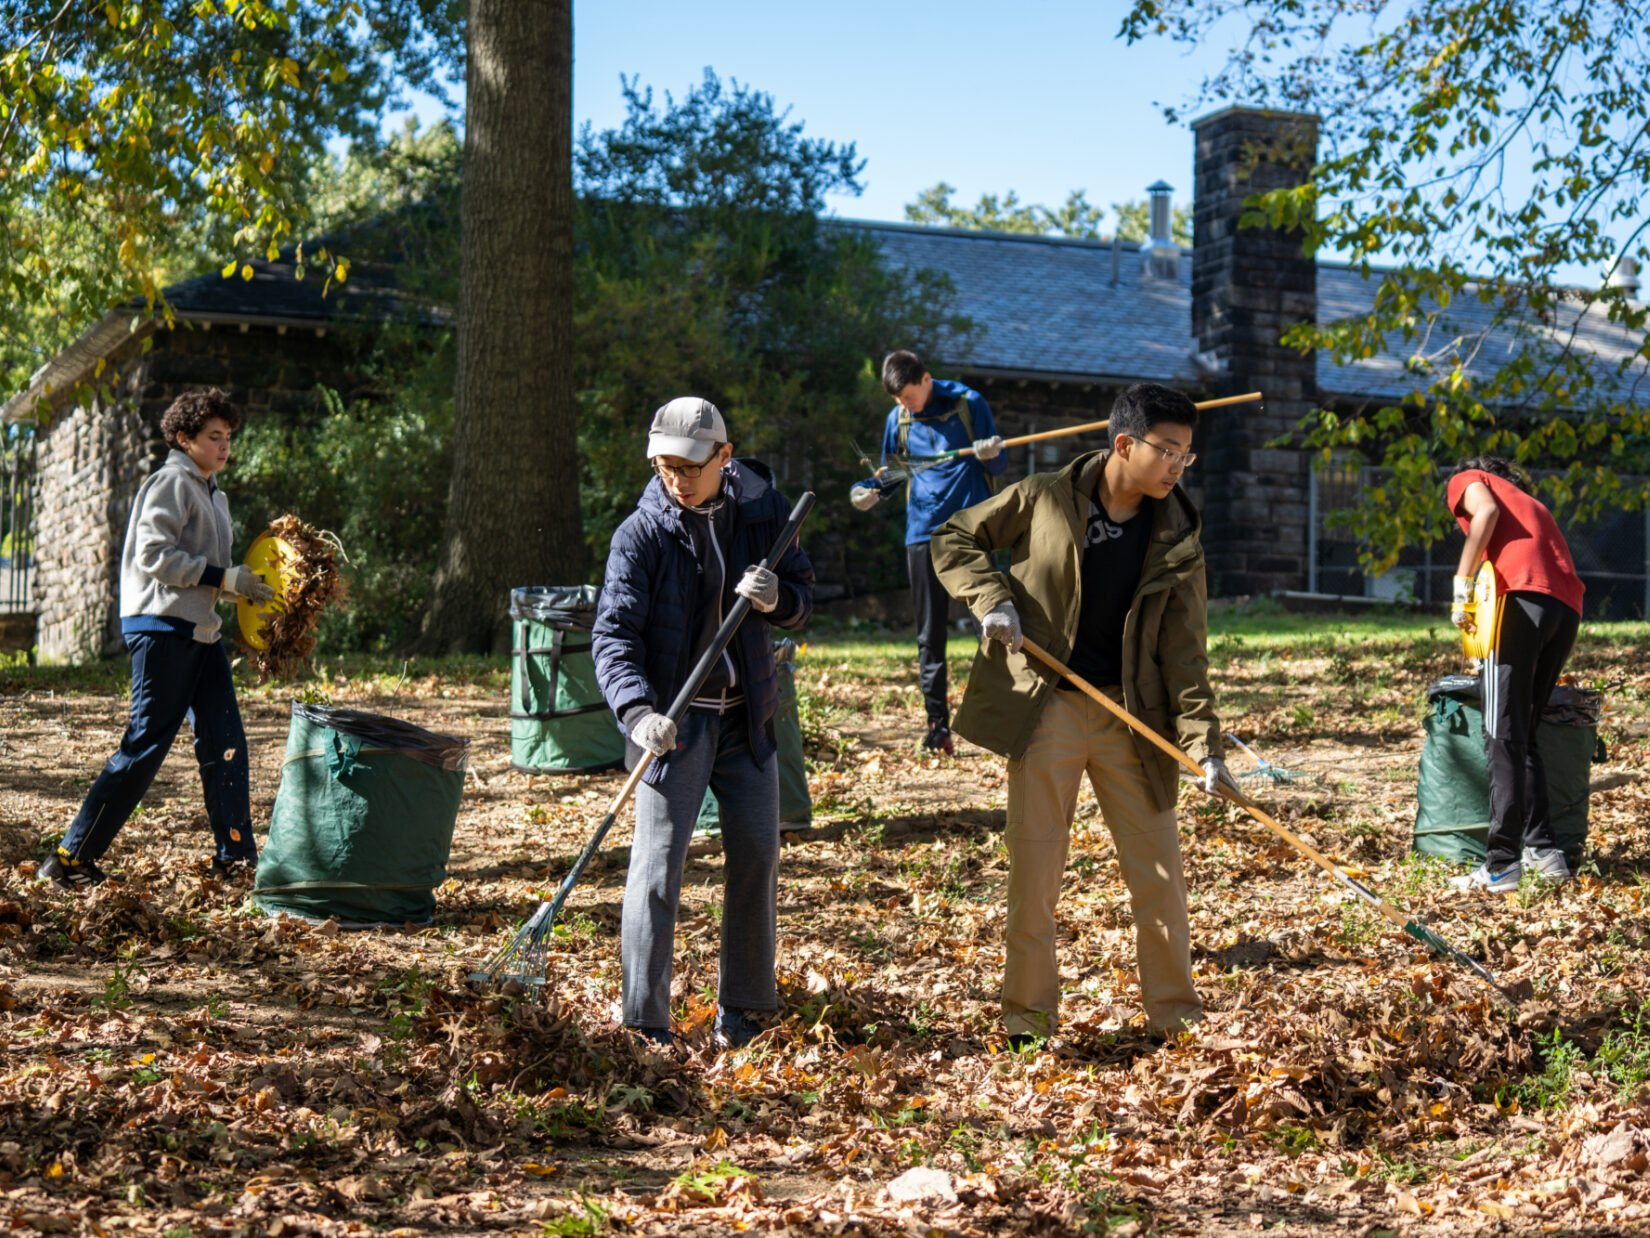 Teens with rakes volunteer on a leaf-strewn landscape in Central Park